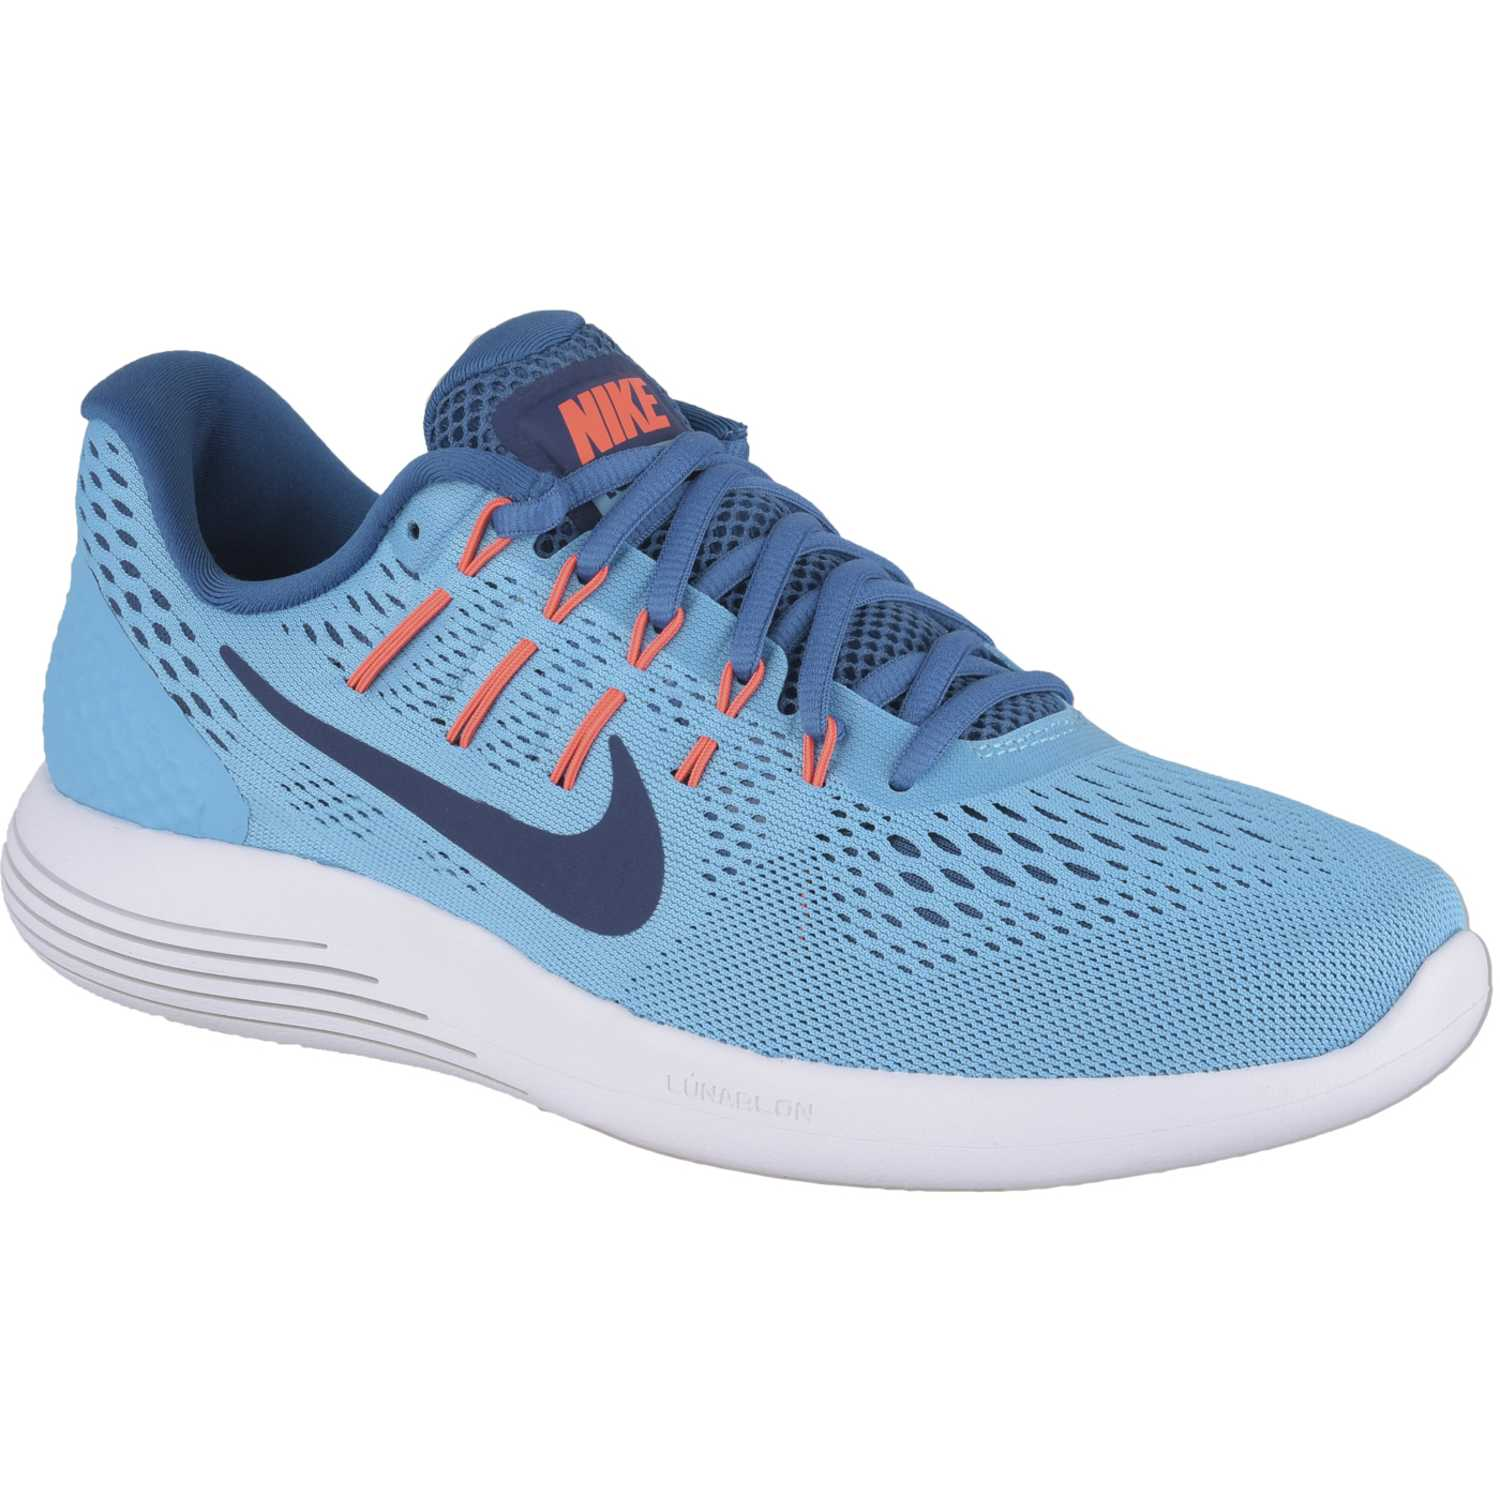 sports shoes 11d61 a59be Zapatilla de Hombre Nike Celeste   blanco lunarglide 8